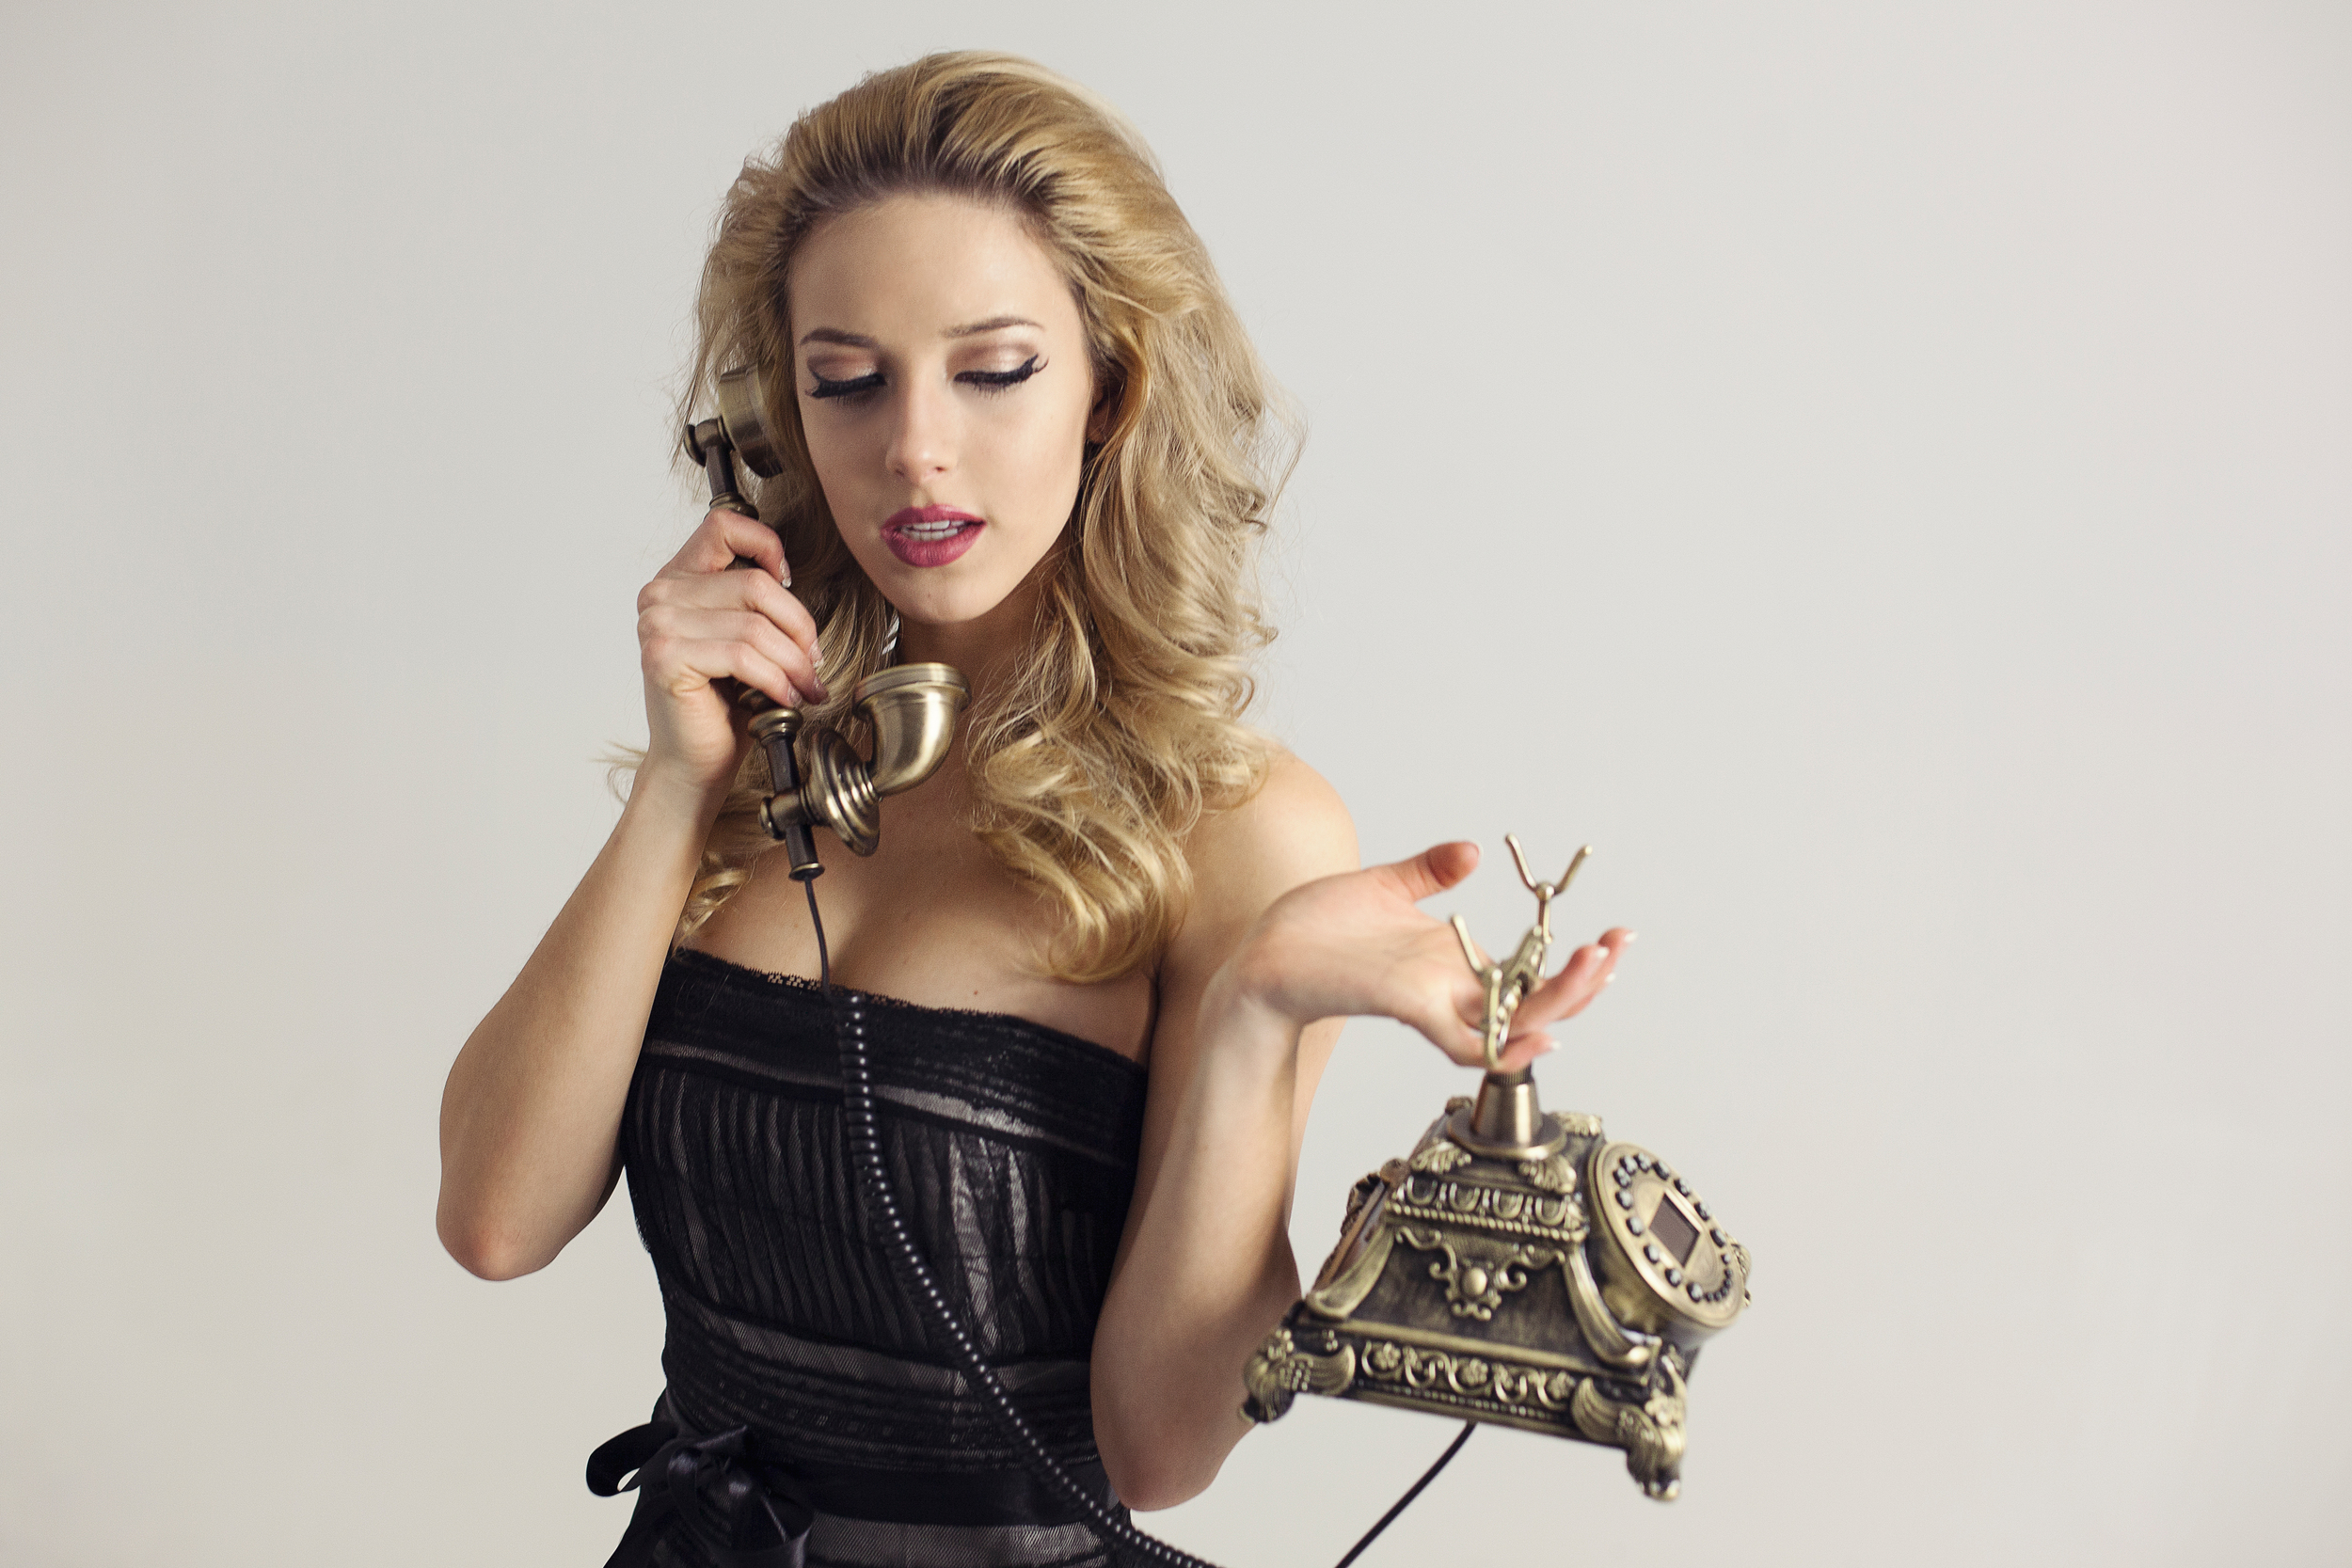 Model on the phone - Fashion